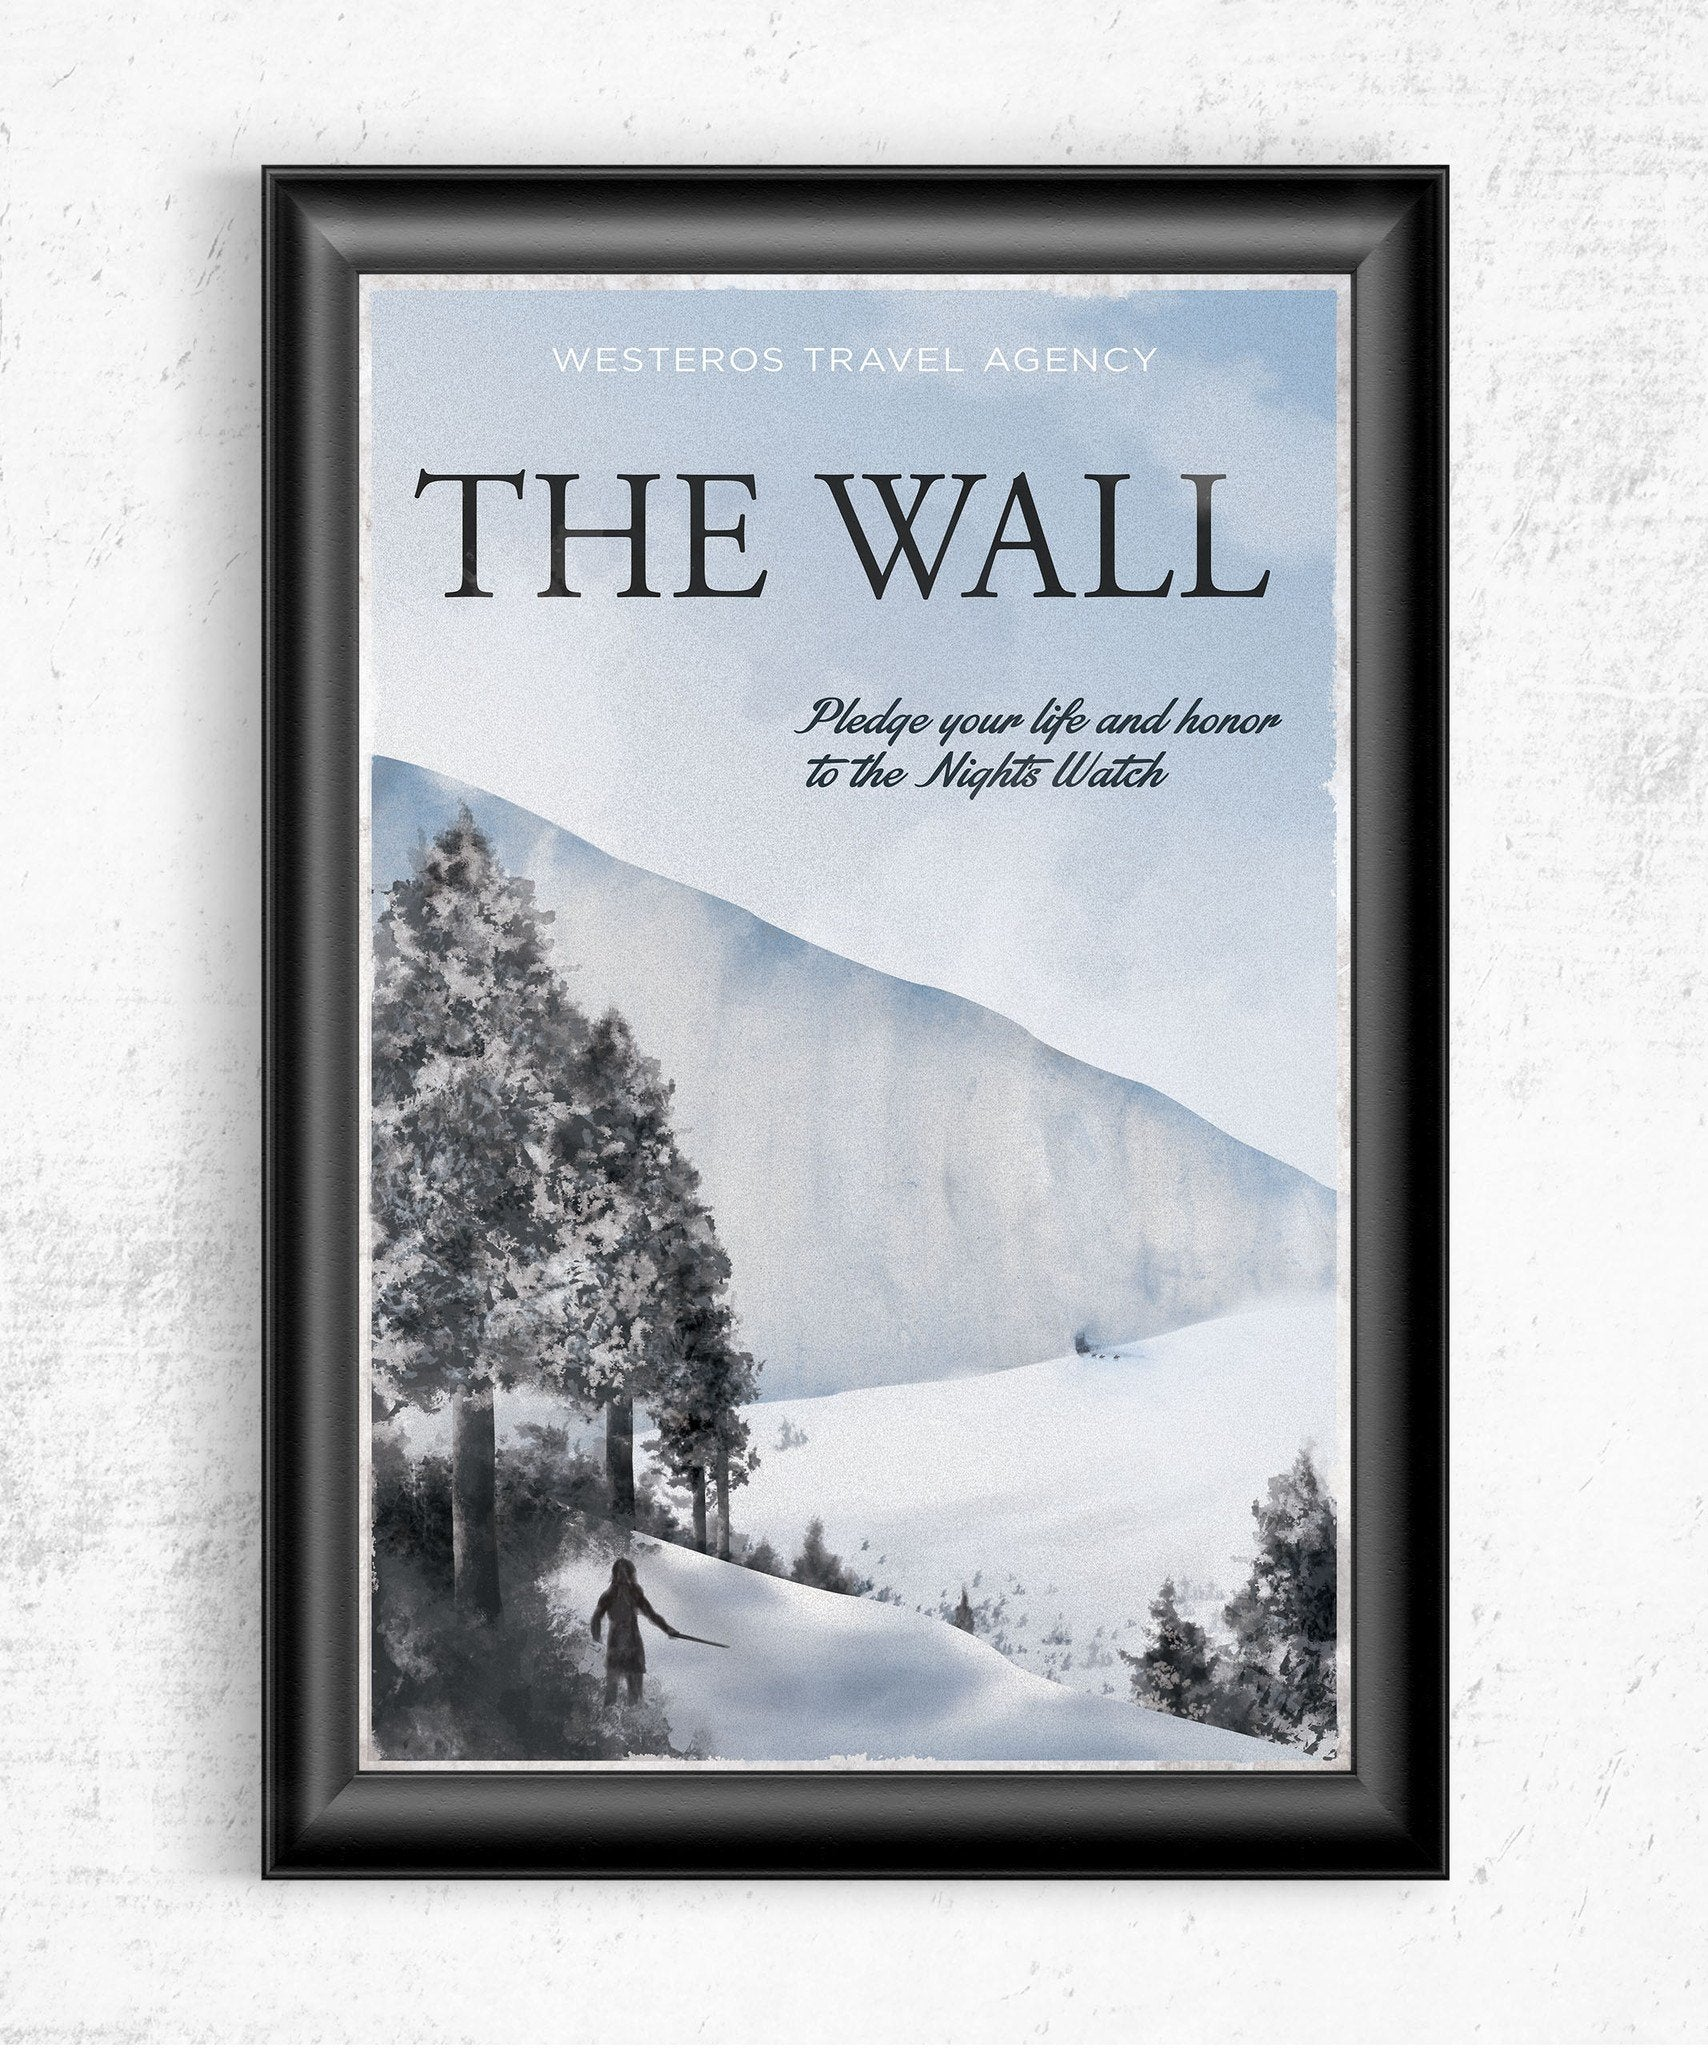 The Wall Travel Poster Posters by Dylan West - Pixel Empire